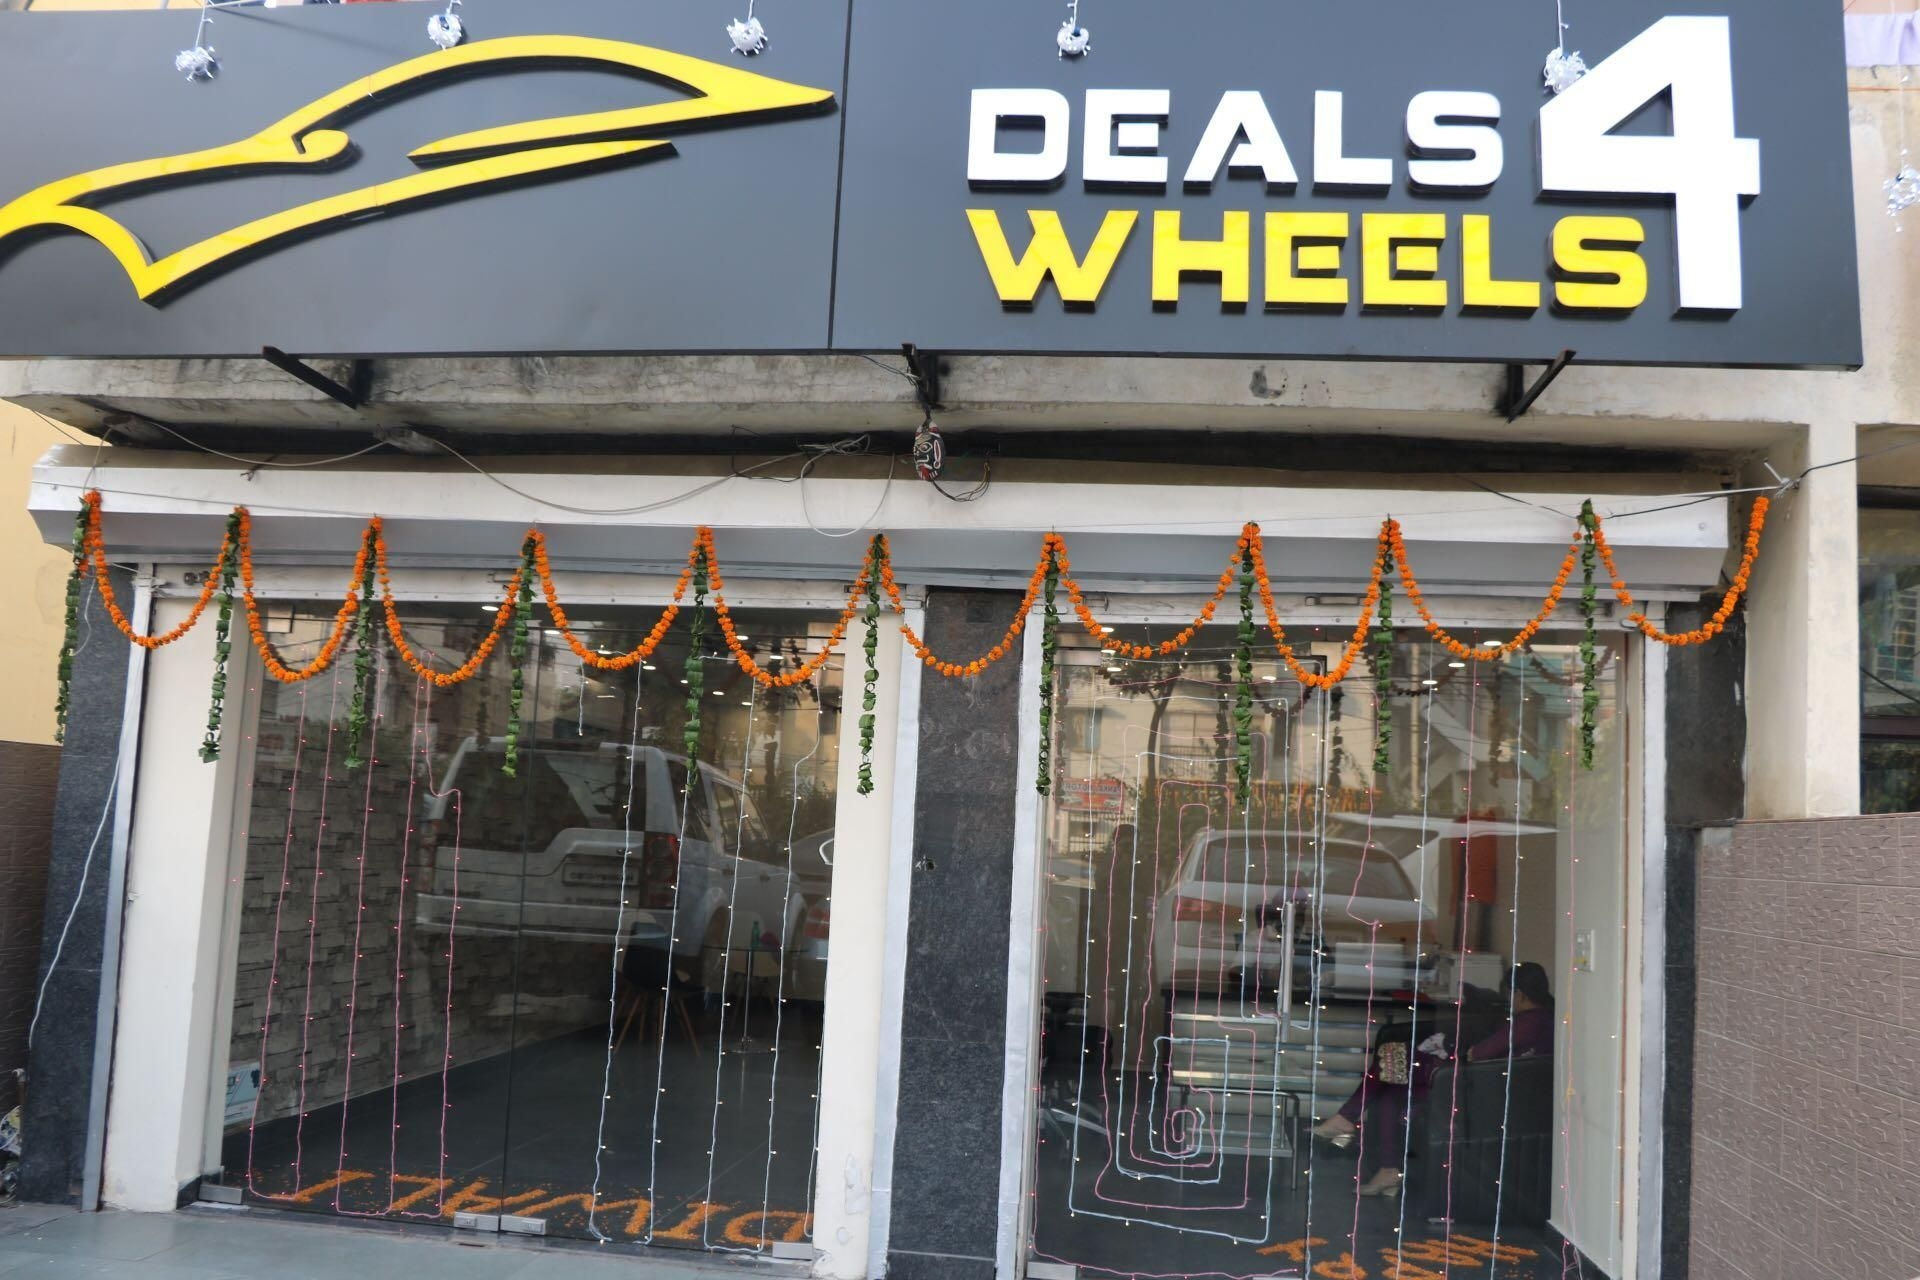 Deals 4 Wheels Private Limited